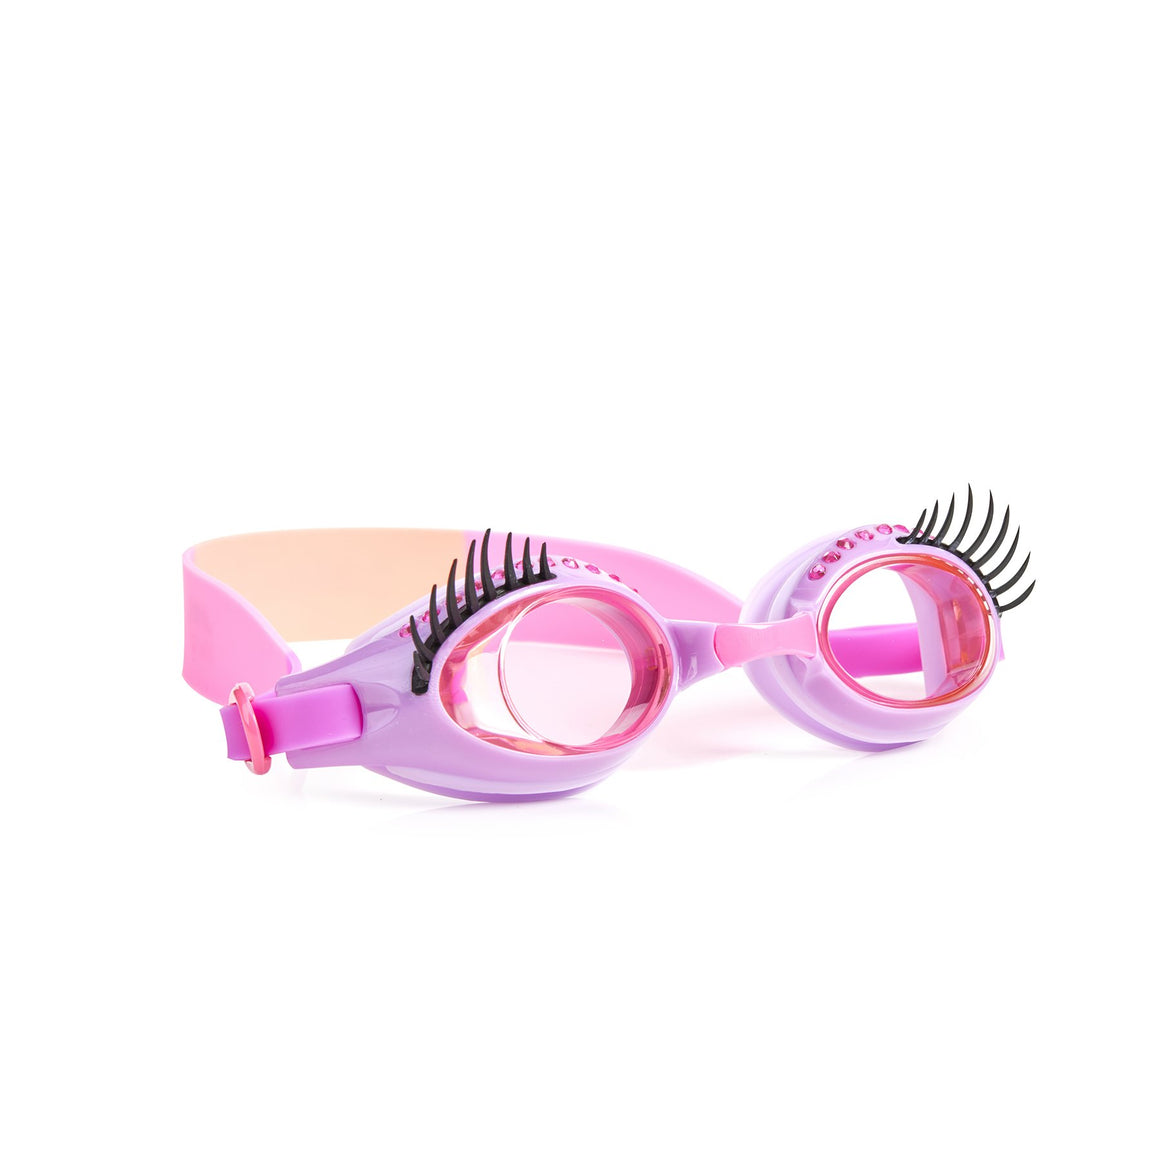 Bling2O | Girls Glam Lash Swim Goggles | Beauty Parlor Pink